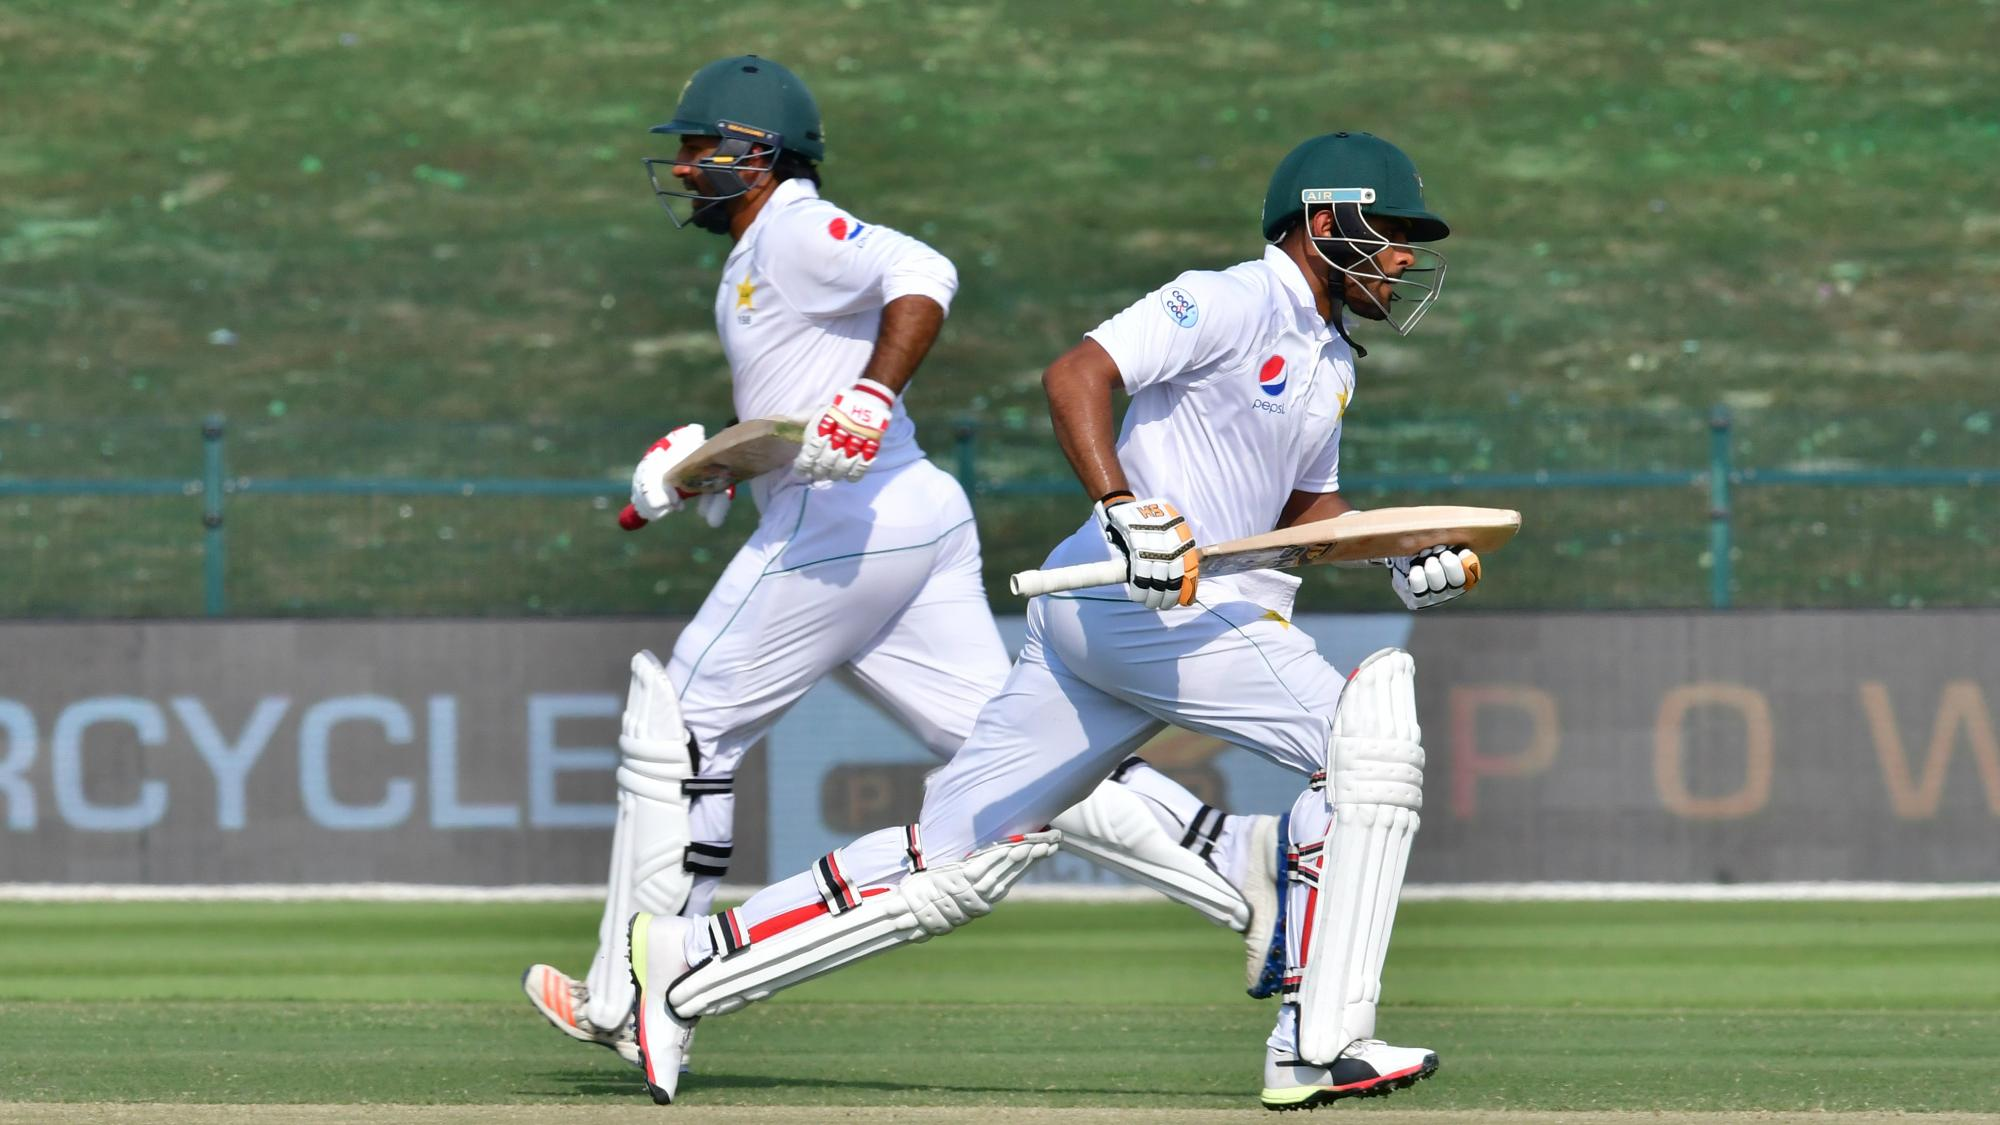 Pakistan nine strikes away from series-clinching win